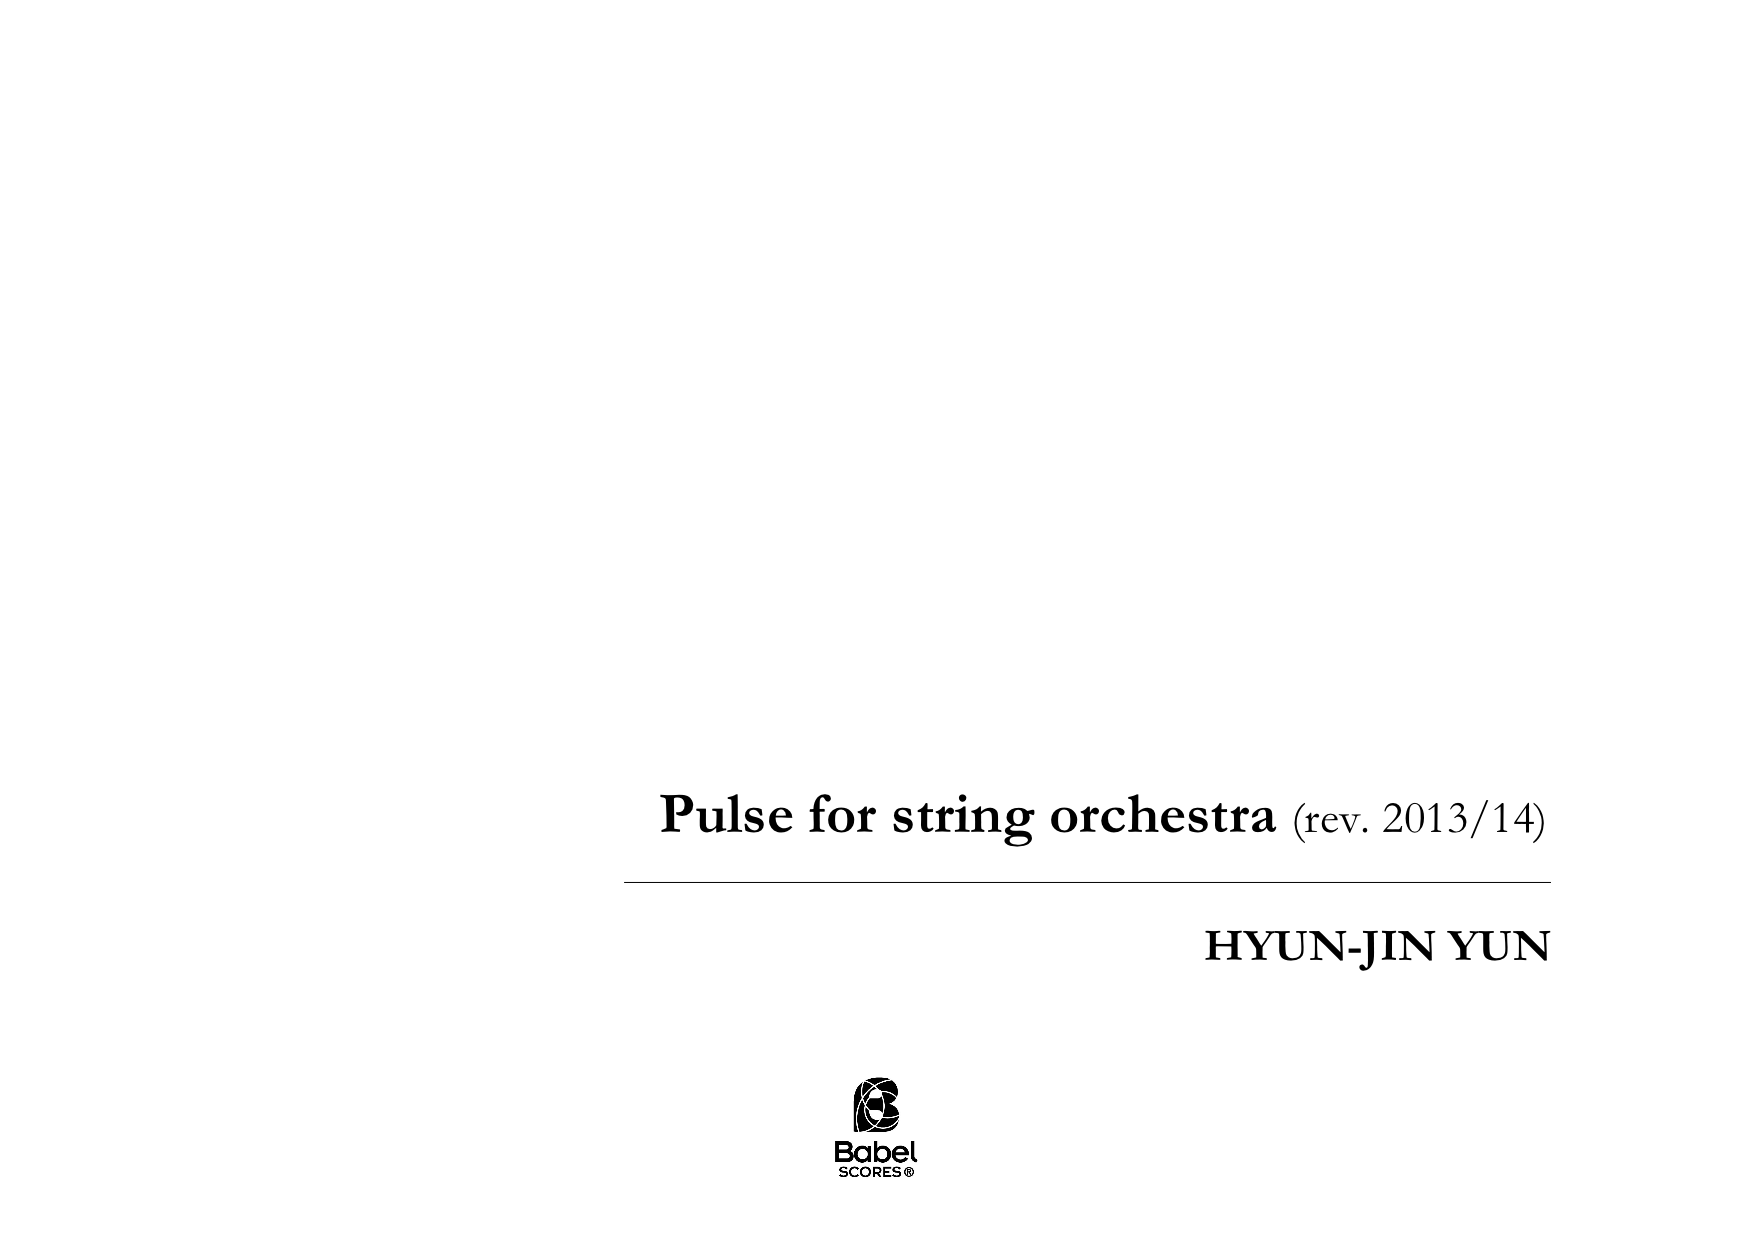 Pulse for String Orchestra A4 z 3 1 479